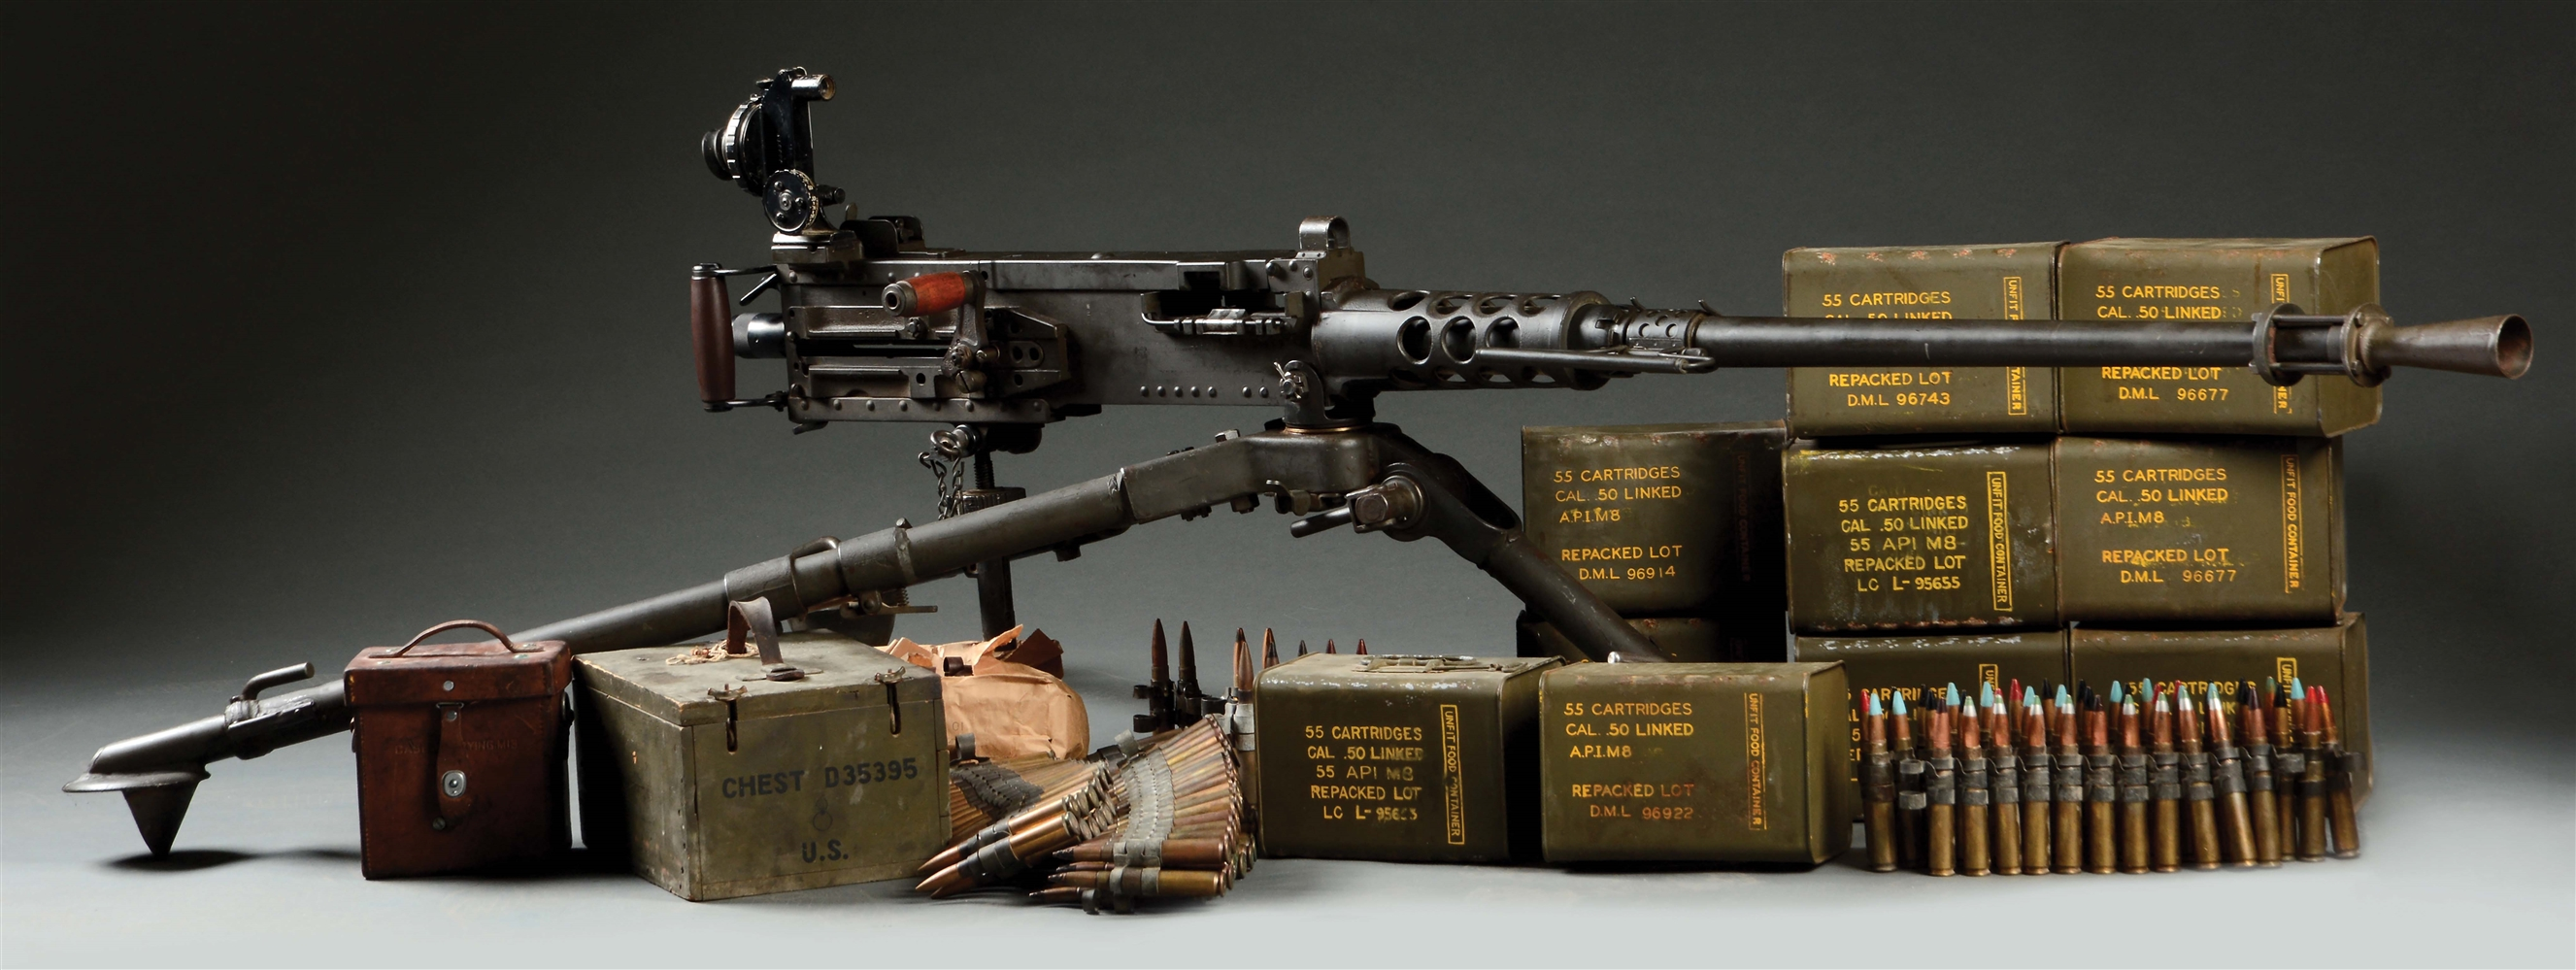 (N) WELL ACCESSORIZED AND HIGHLY COLLECTIBLE WORLD WAR II SAVAGE ARMS CORPORATION U.S. M2 HEAVY BARRELED .50 BMG MACHINE GUN (CURIO AND RELIC).